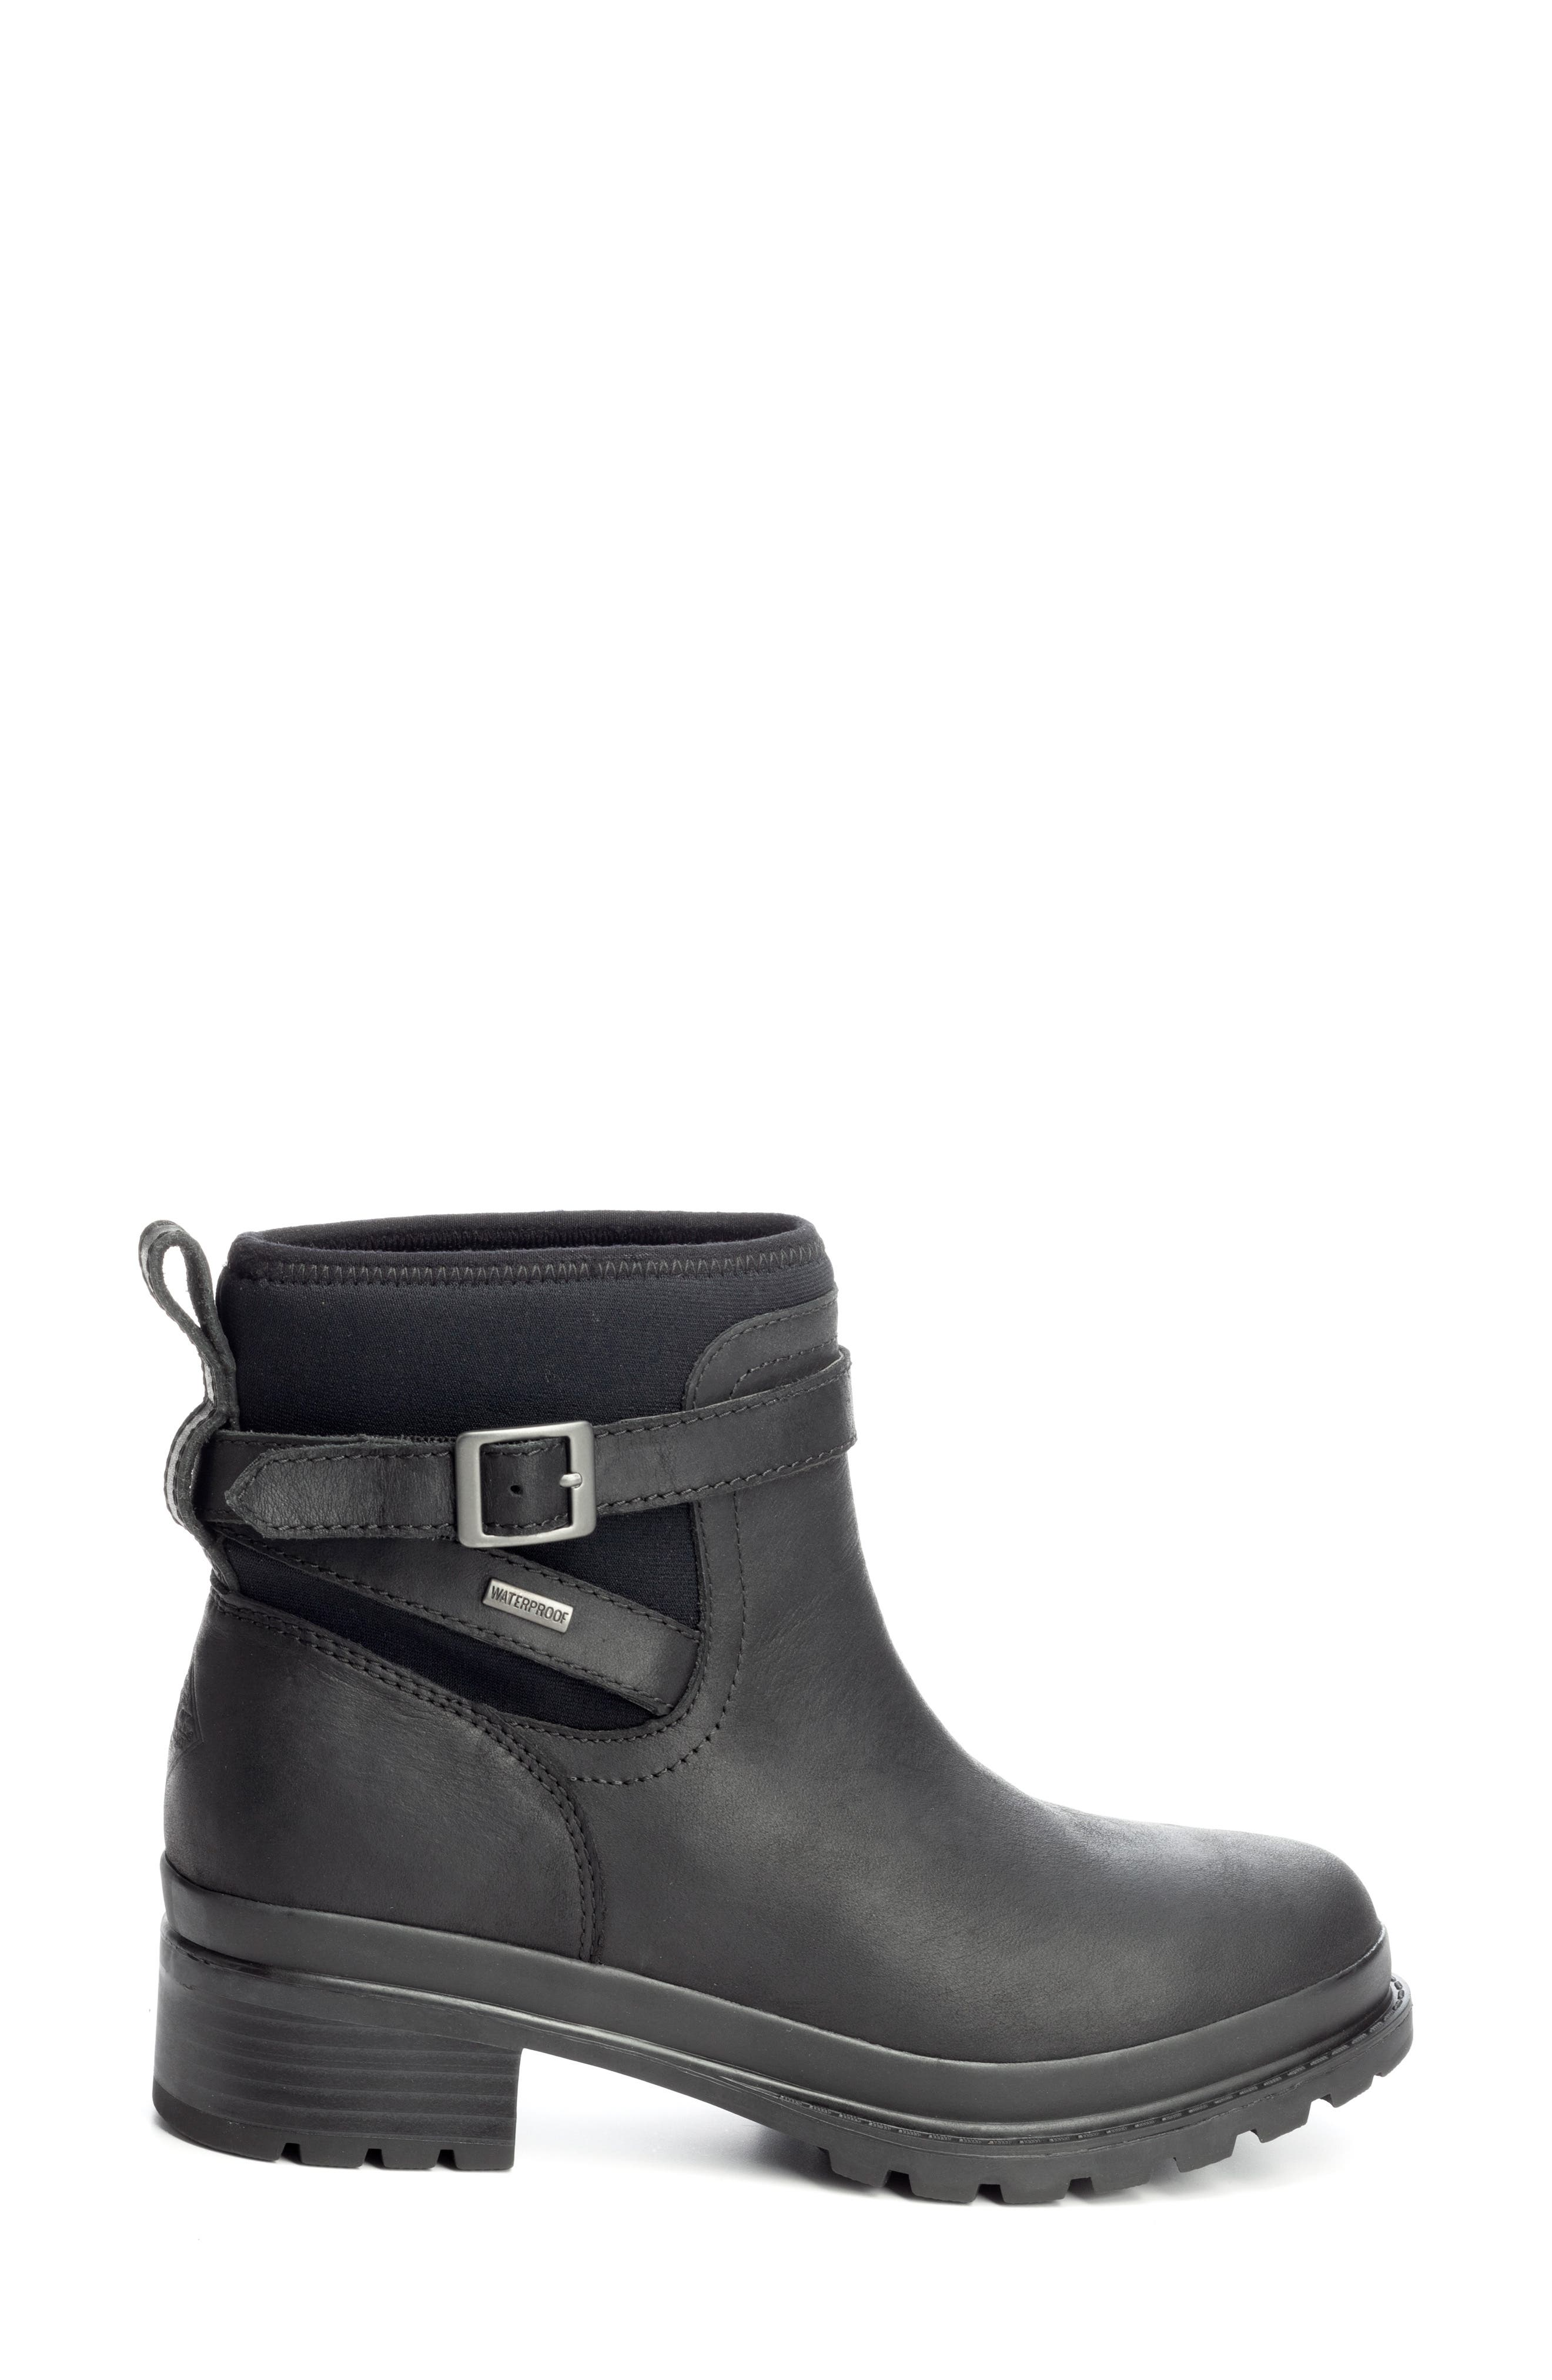 THE ORIGINAL MUCK BOOT COMPANY, Liberty Waterproof Boot, Alternate thumbnail 3, color, BLACK LEATHER